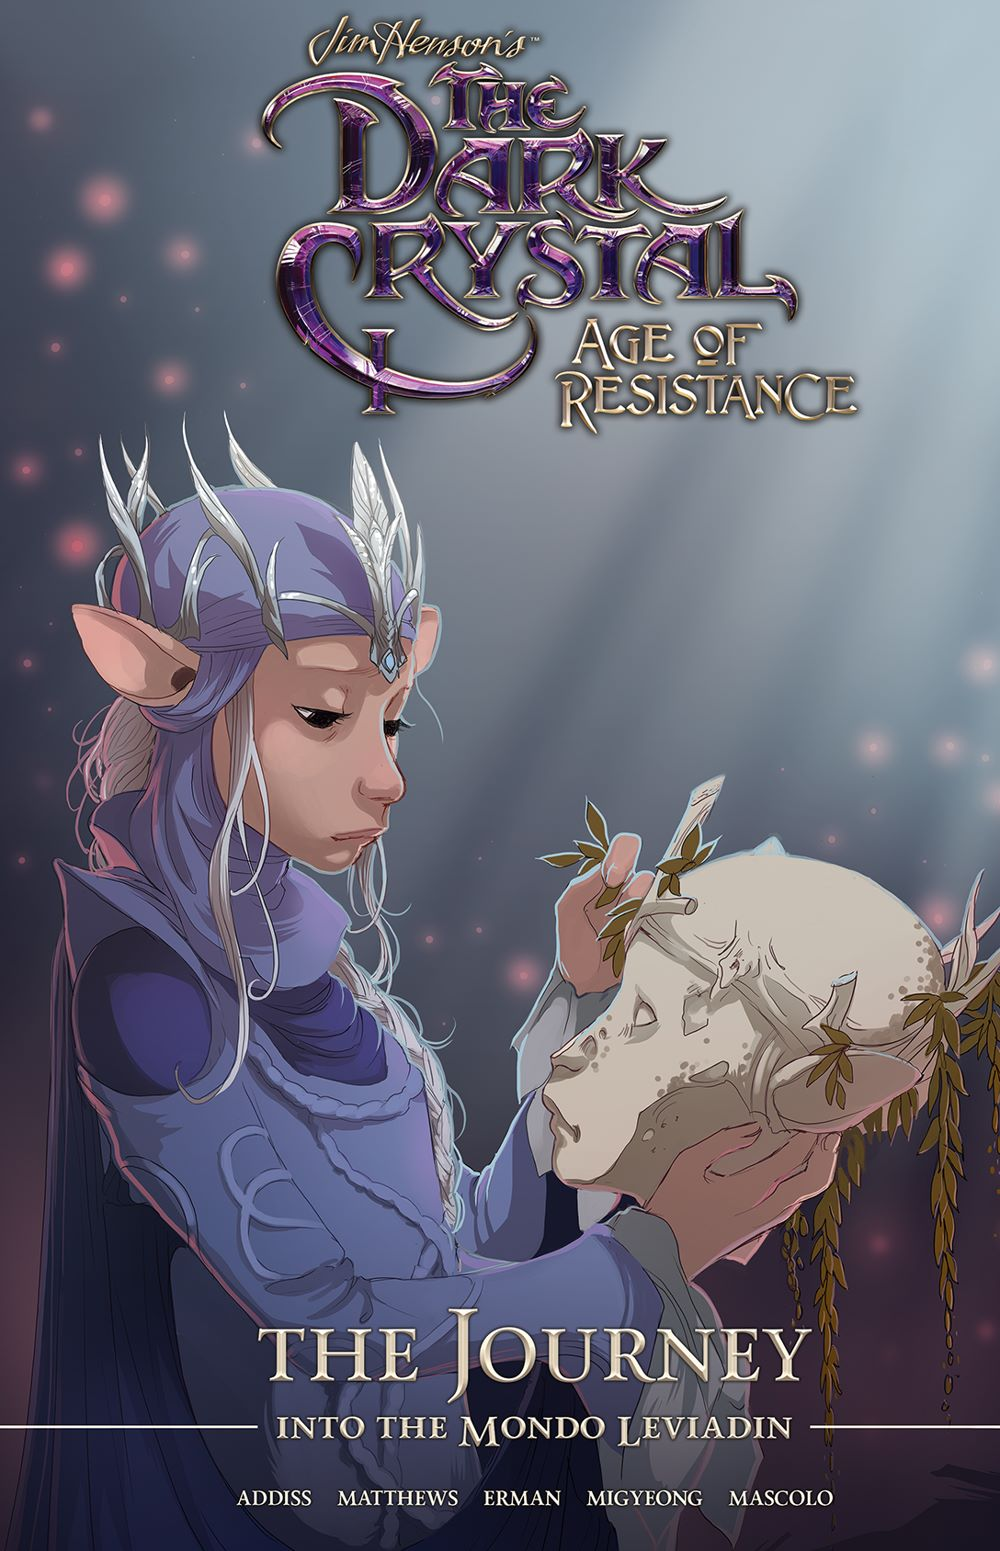 DarkCrystal_AgeResistance_v3_Journey_Cover ComicList Previews: JIM HENSON'S THE DARK CRYSTAL AGE OF RESISTANCE VOLUME 3 THE JOURNEY INTO THE MONDO LEVIADIN HC